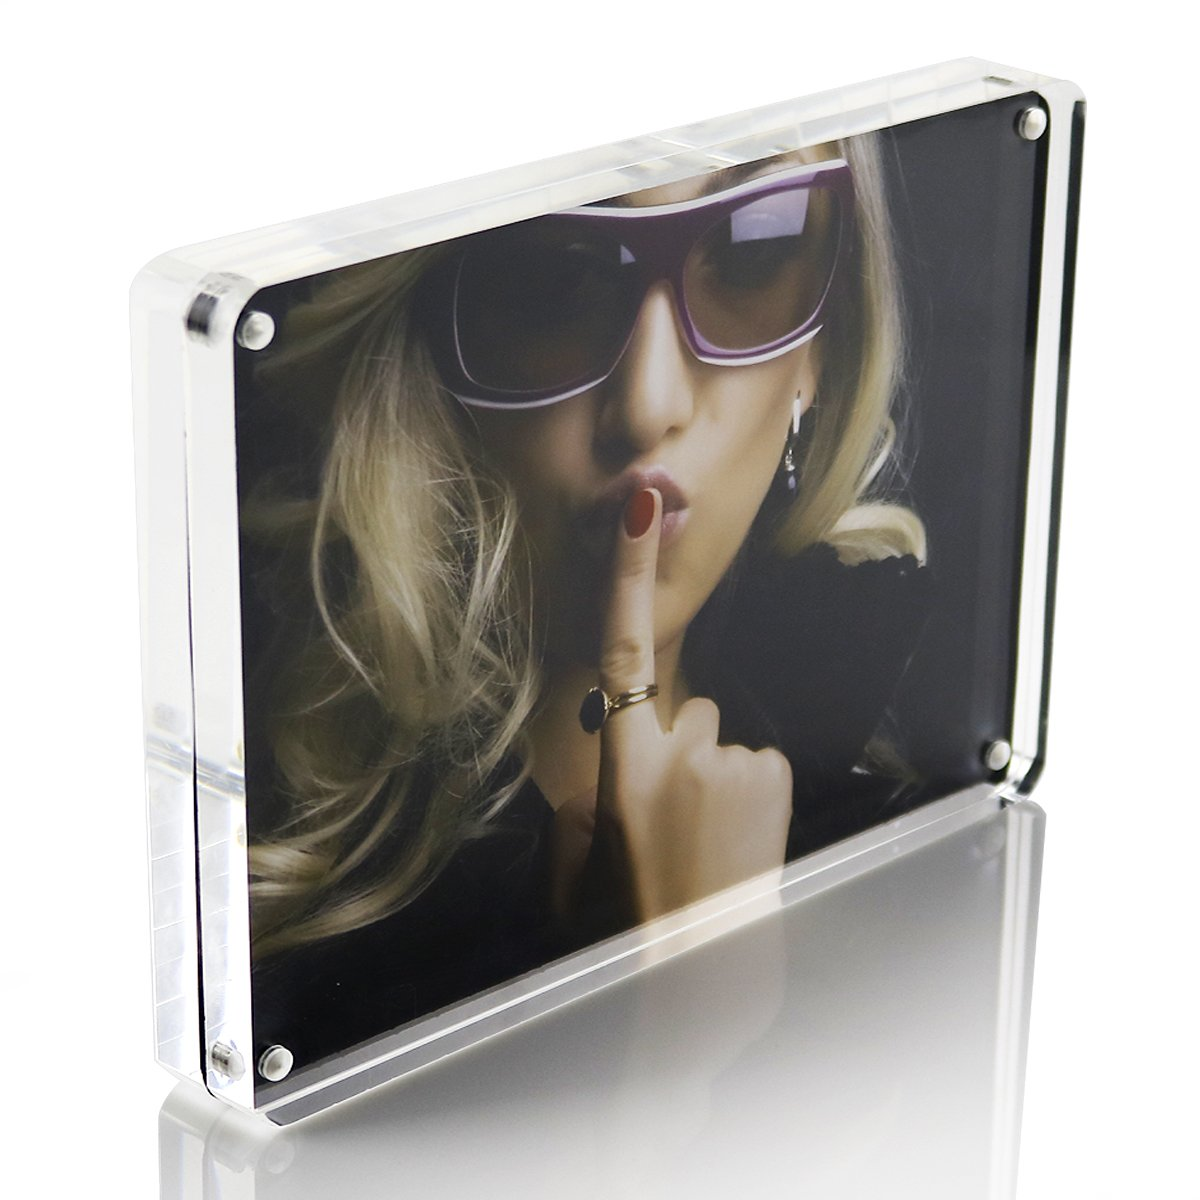 5x7 Double Sided Magnetic Clear Acrylic Glass Picture Frames - Round Corner 12+12mm Thickness Acrylic Block Desktop Picture Frame - Frameless Desktop Card Display with Gift Box Package - SupperAcrylic